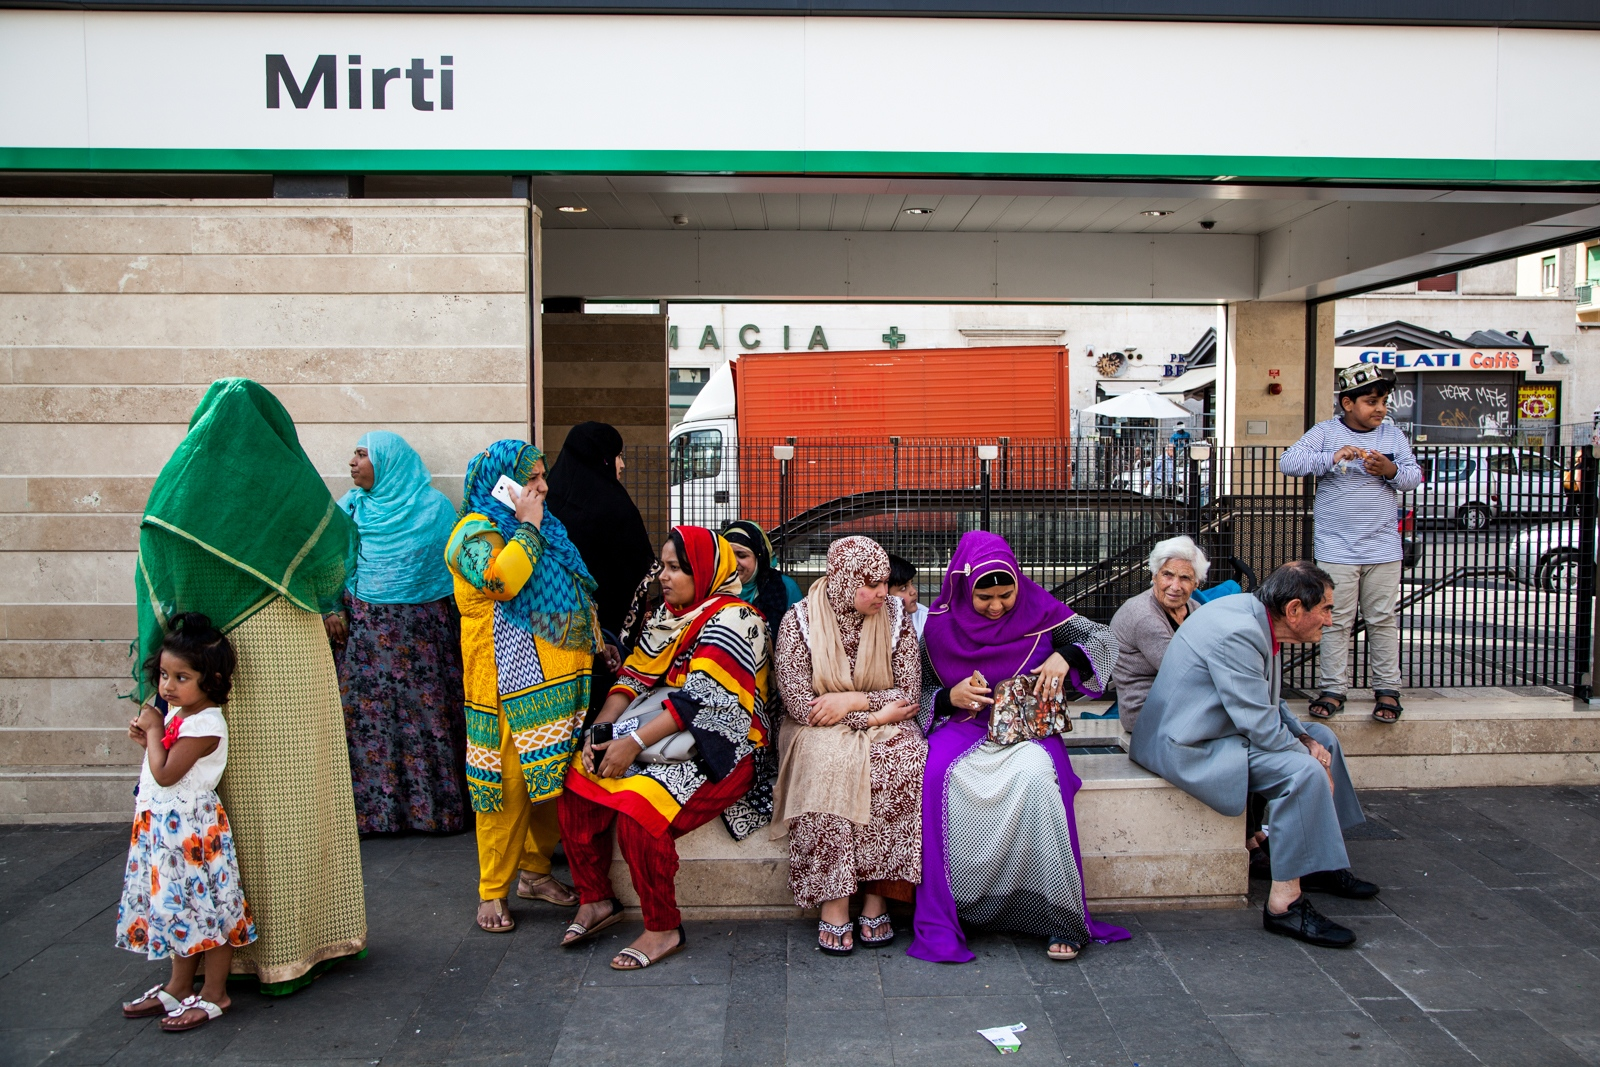 Sept. 30, 2016 - Muslim women wait for the beginning of the Friday communal prayer  in Largo Preneste, a square in the southeastern neighborhood of Torpignattara. In the past few months the Muslim community of southern Rome, has organized public prayers on Friday to protest against the closure of a few mosque in different neighborhoods.